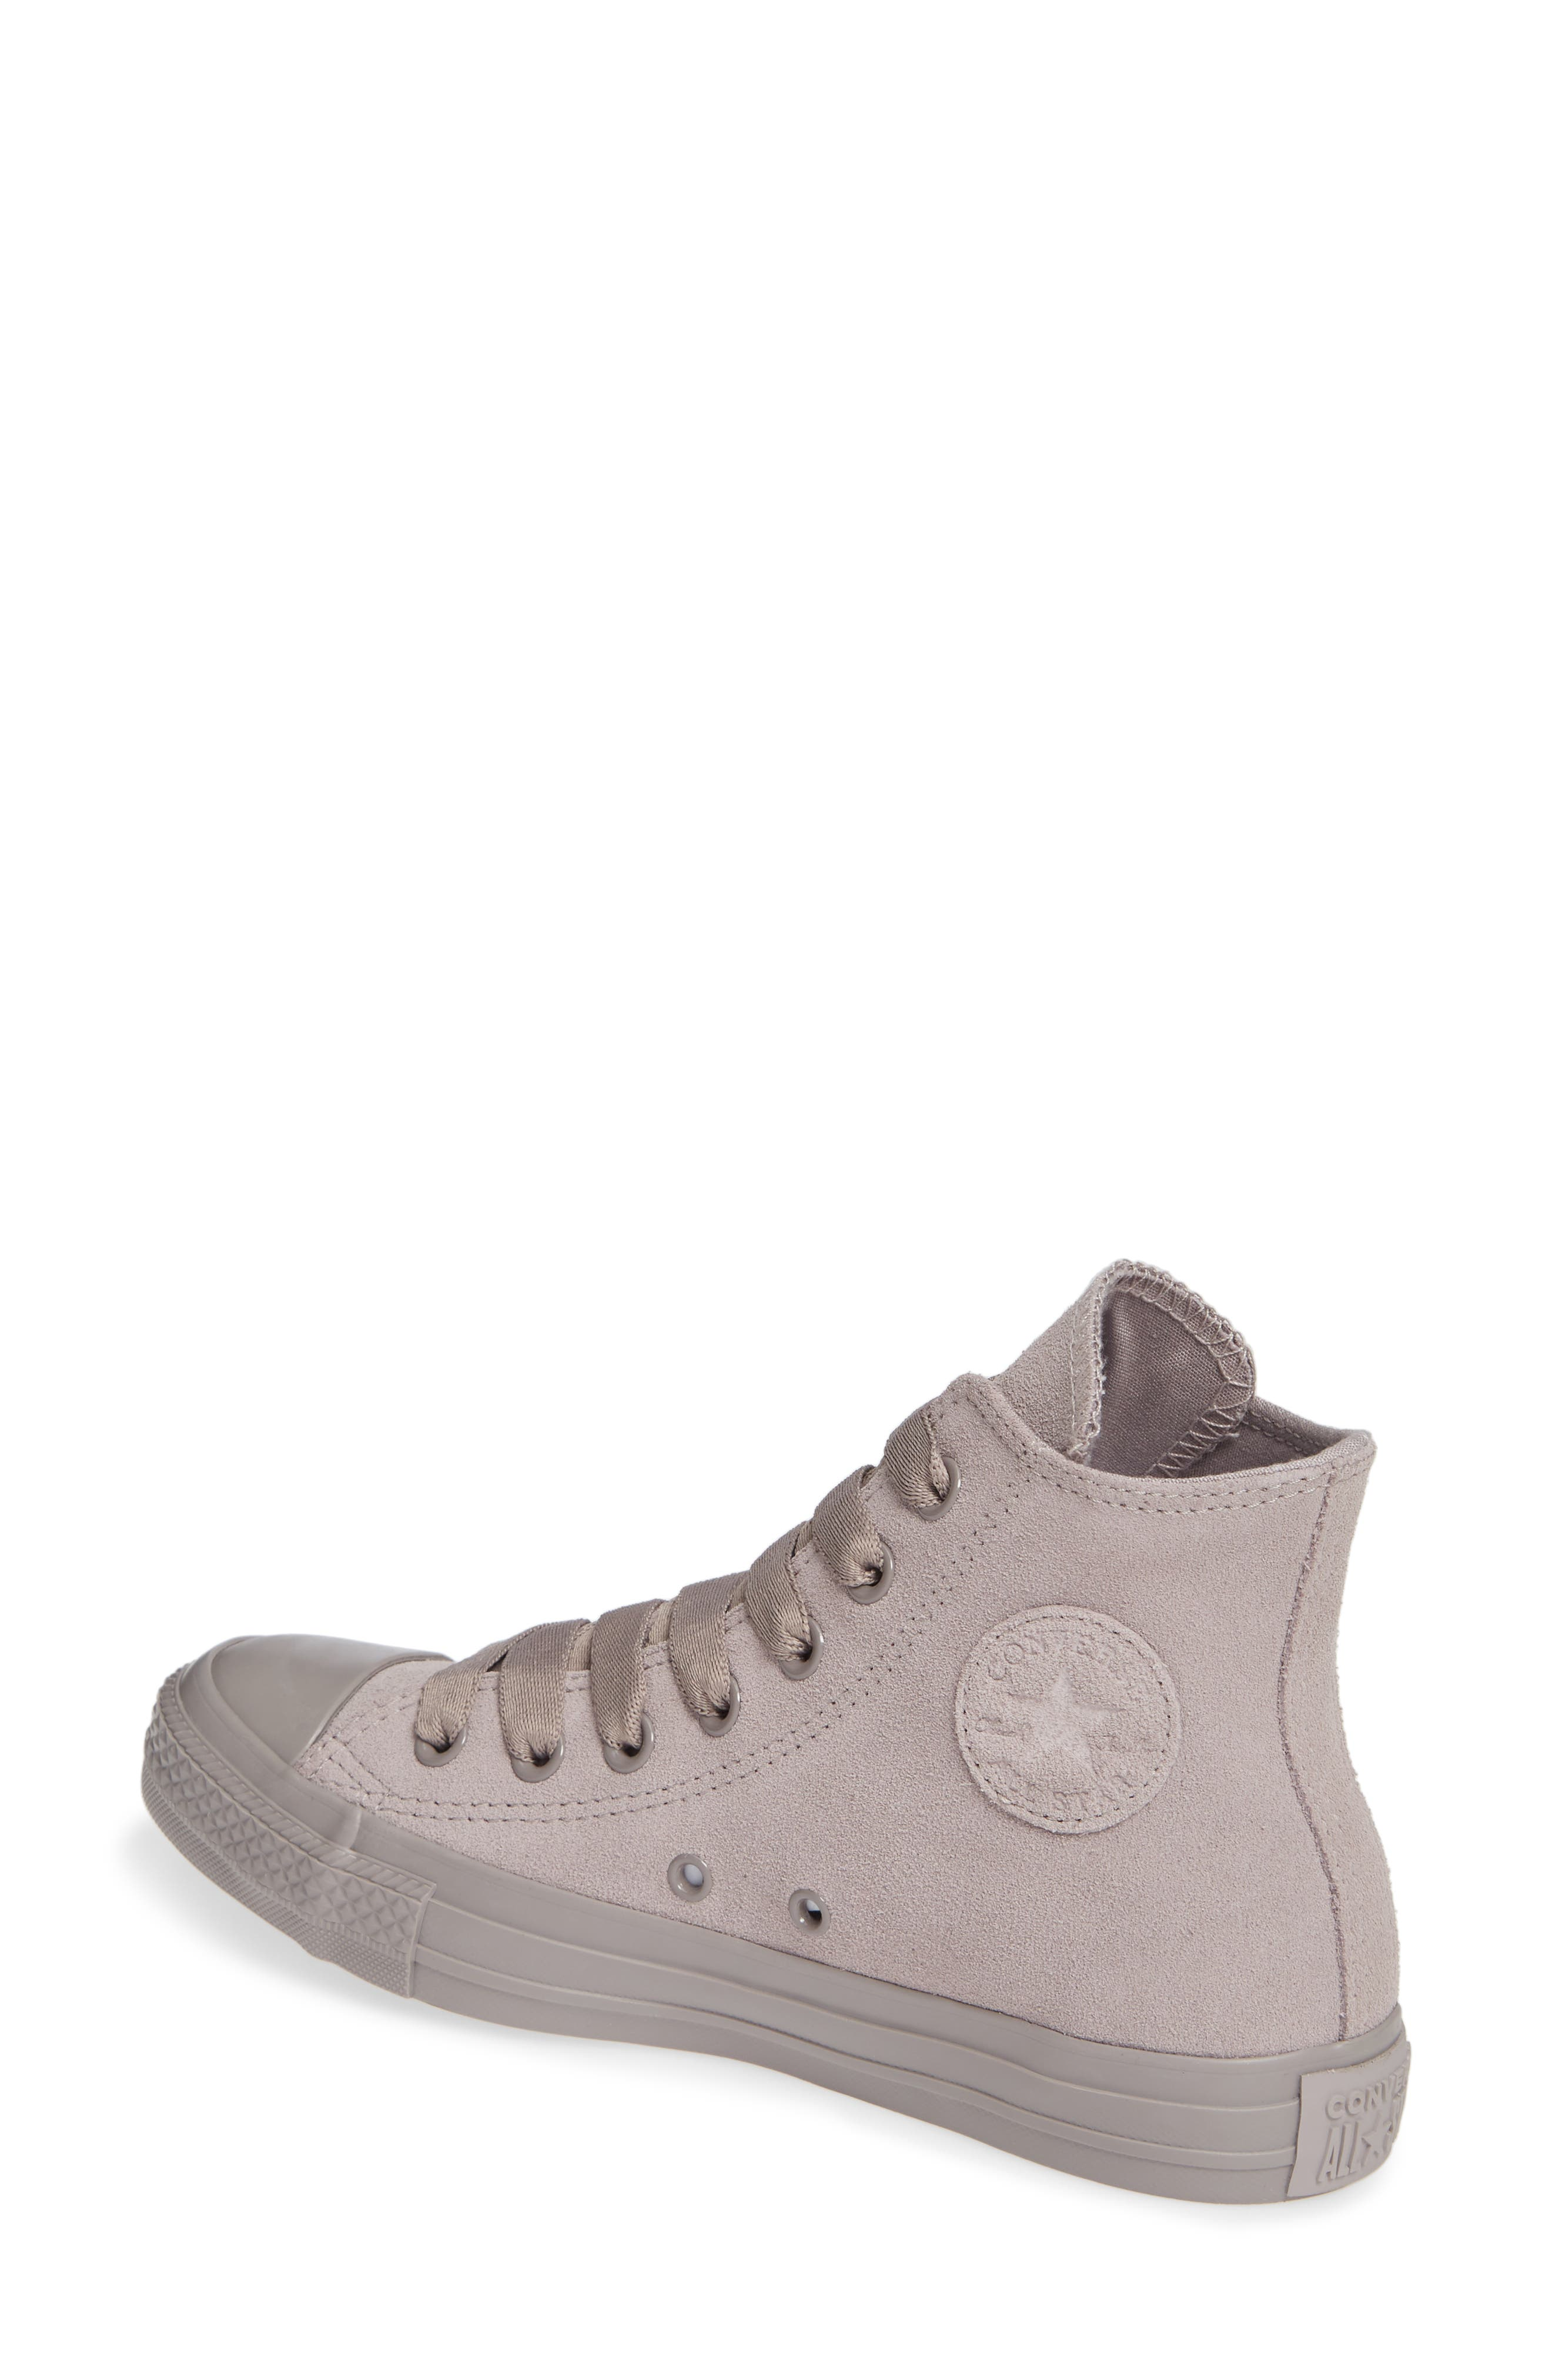 55a461bba5f59c Women's Converse Shoes | Nordstrom